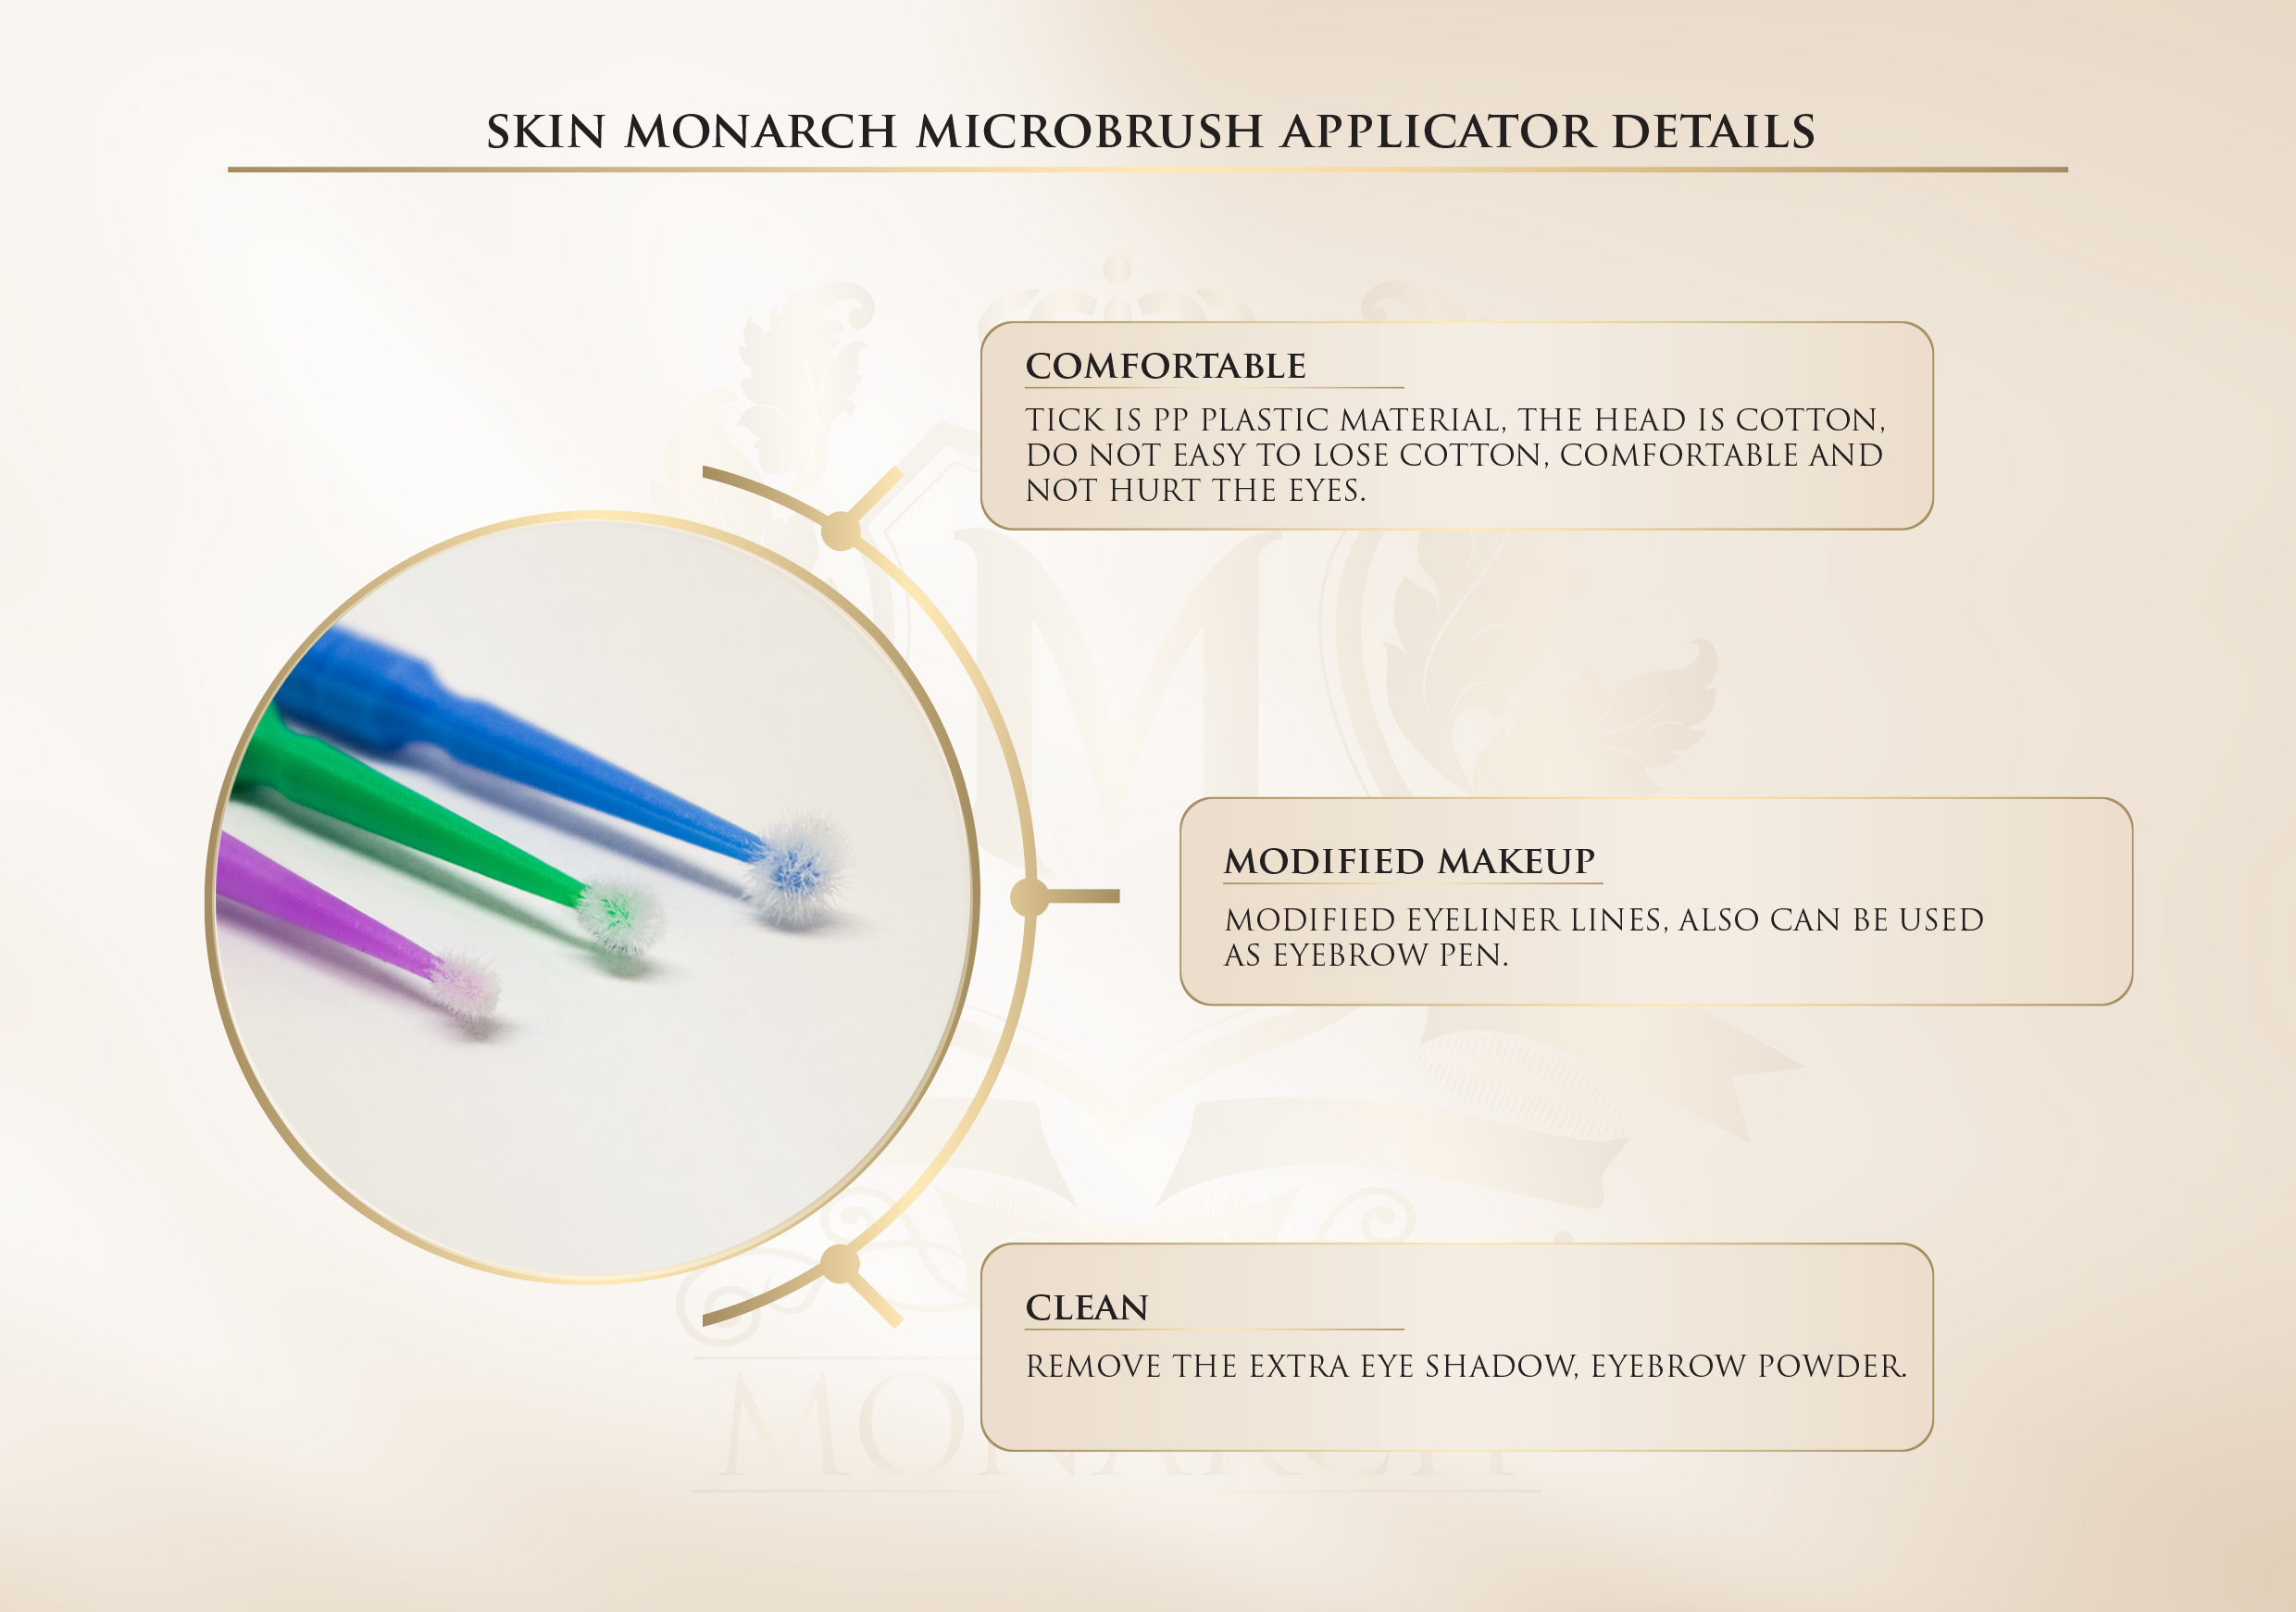 skin monarch microbrush Applicator details.jpg